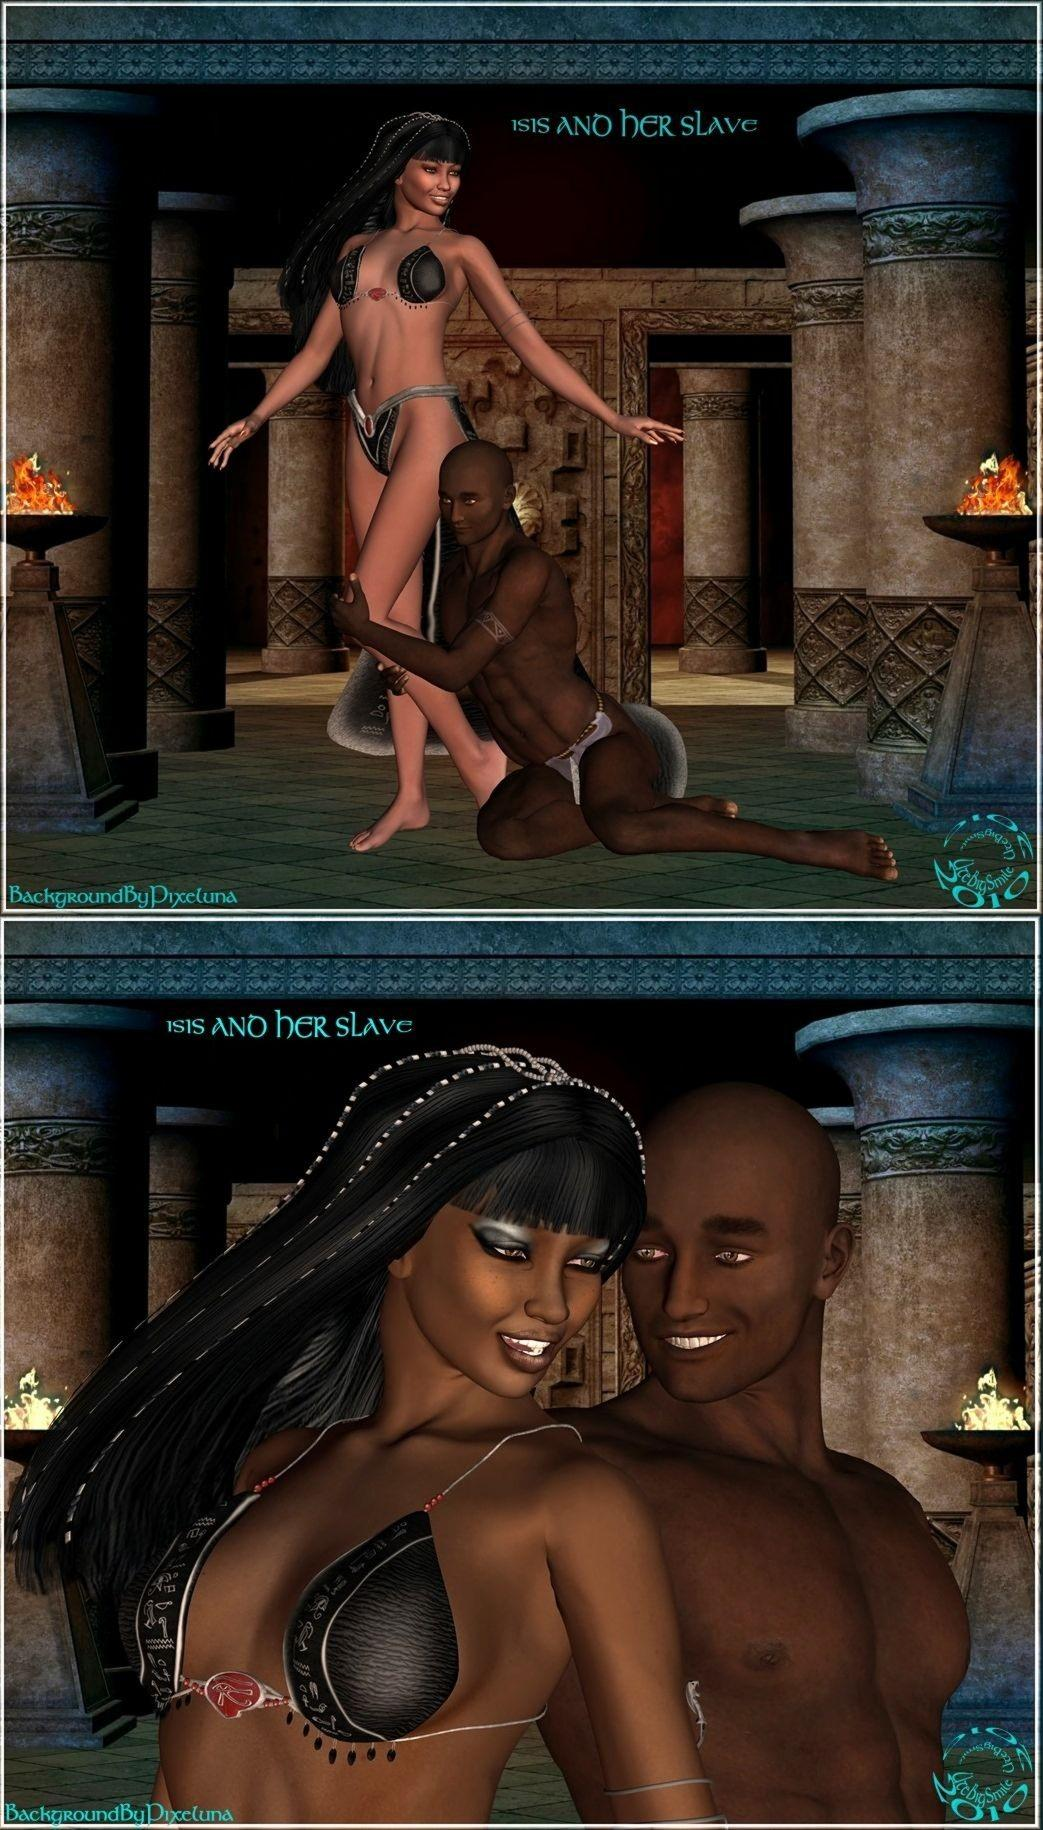 Isis and her Slave   (for missblue & angelafair)  by UteBigSmile